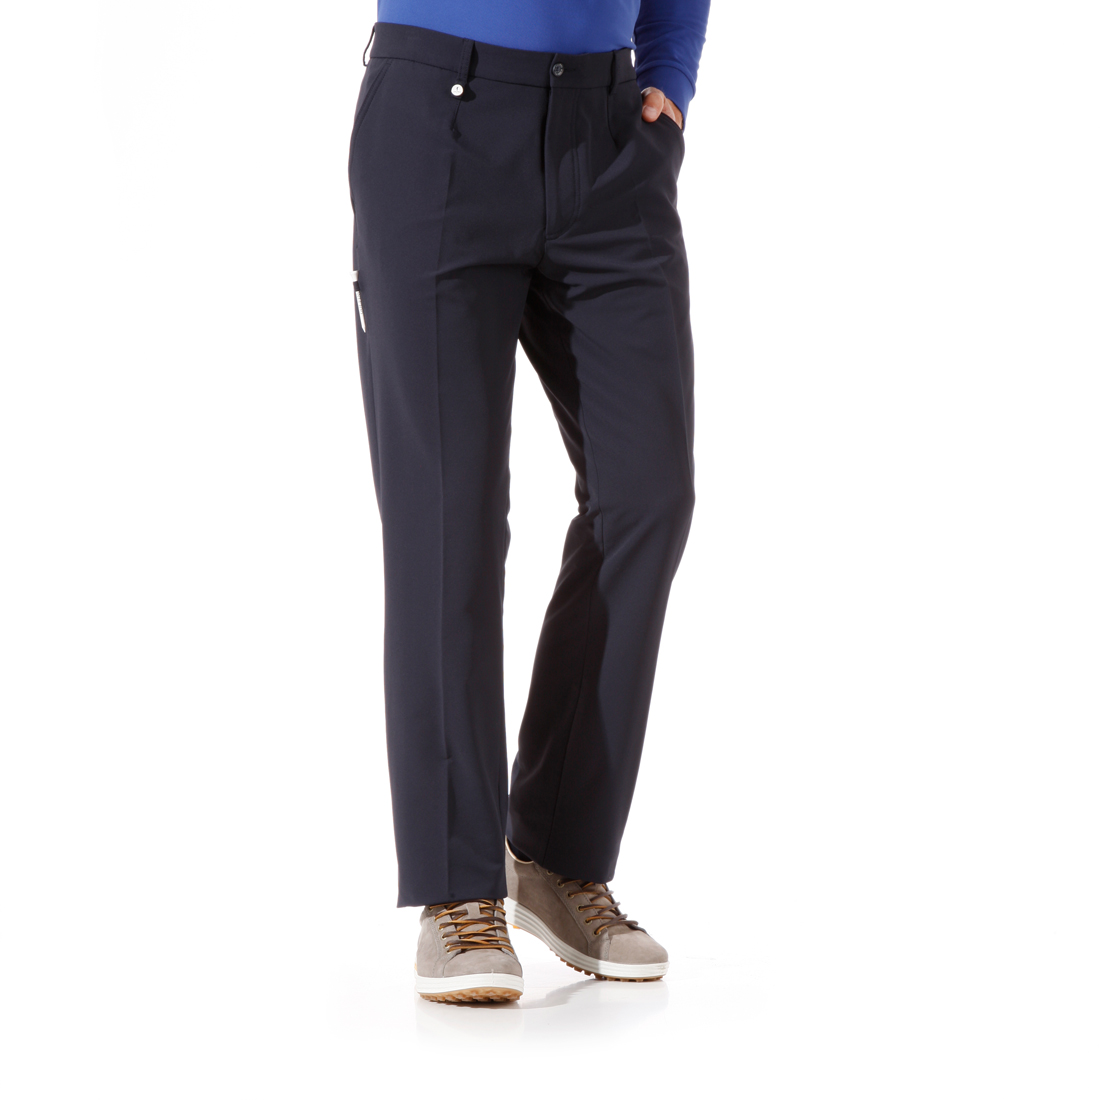 The 4Way Stretch Brushed Trousers